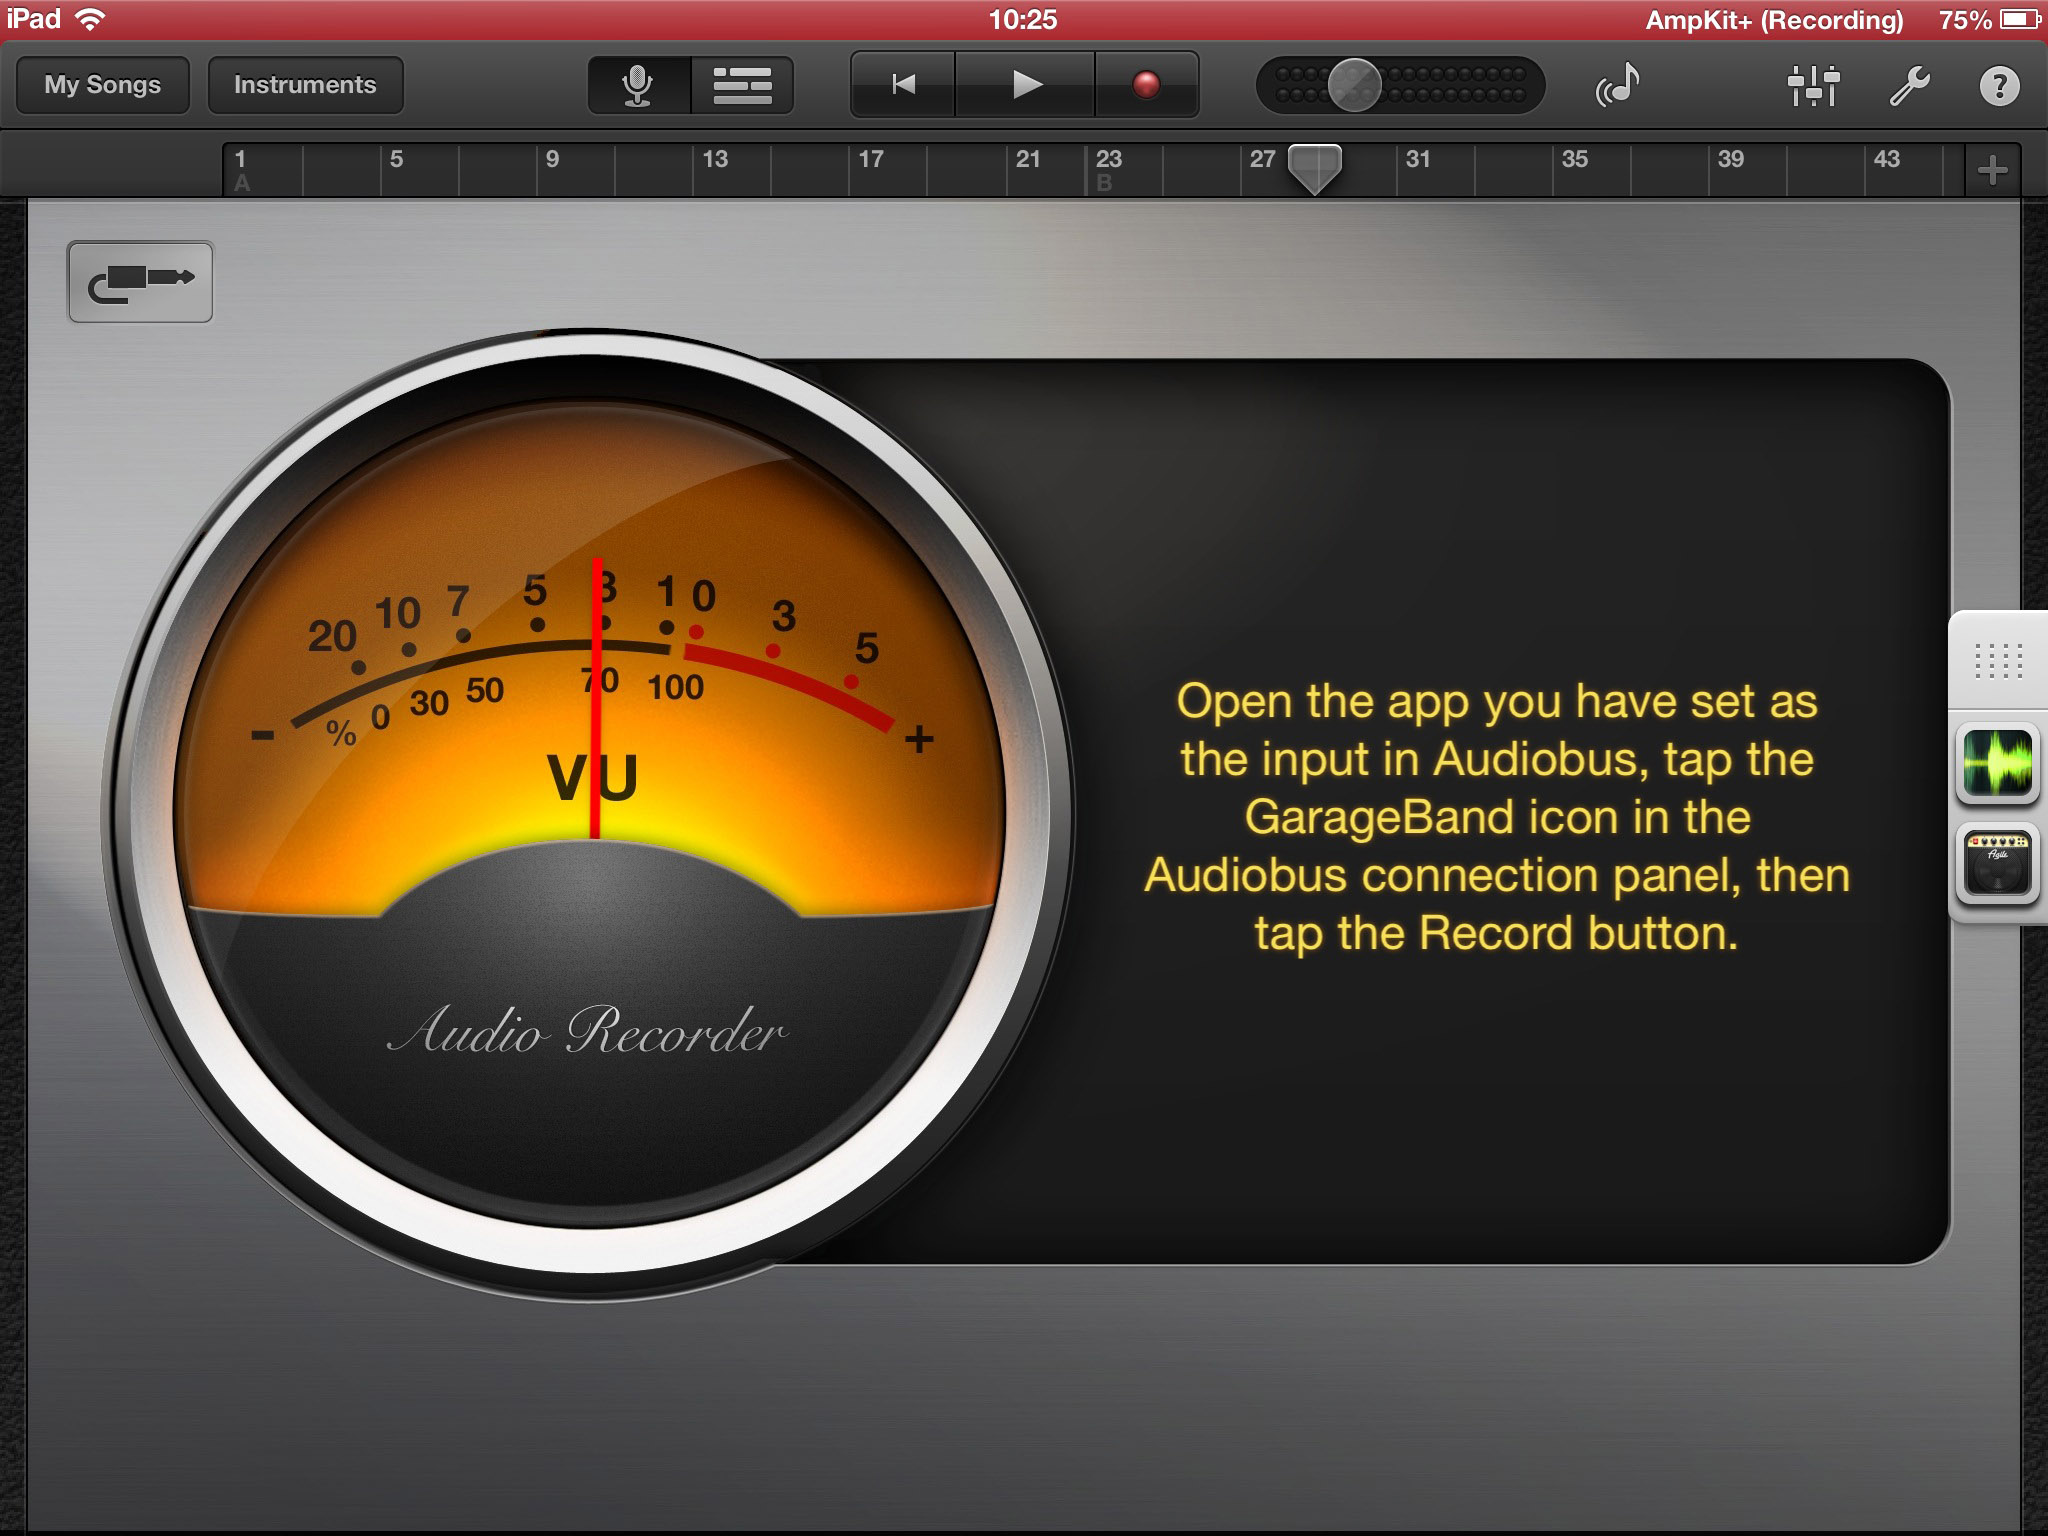 Review Garageband Ipad Garageband Audio Recording Via Audiobus